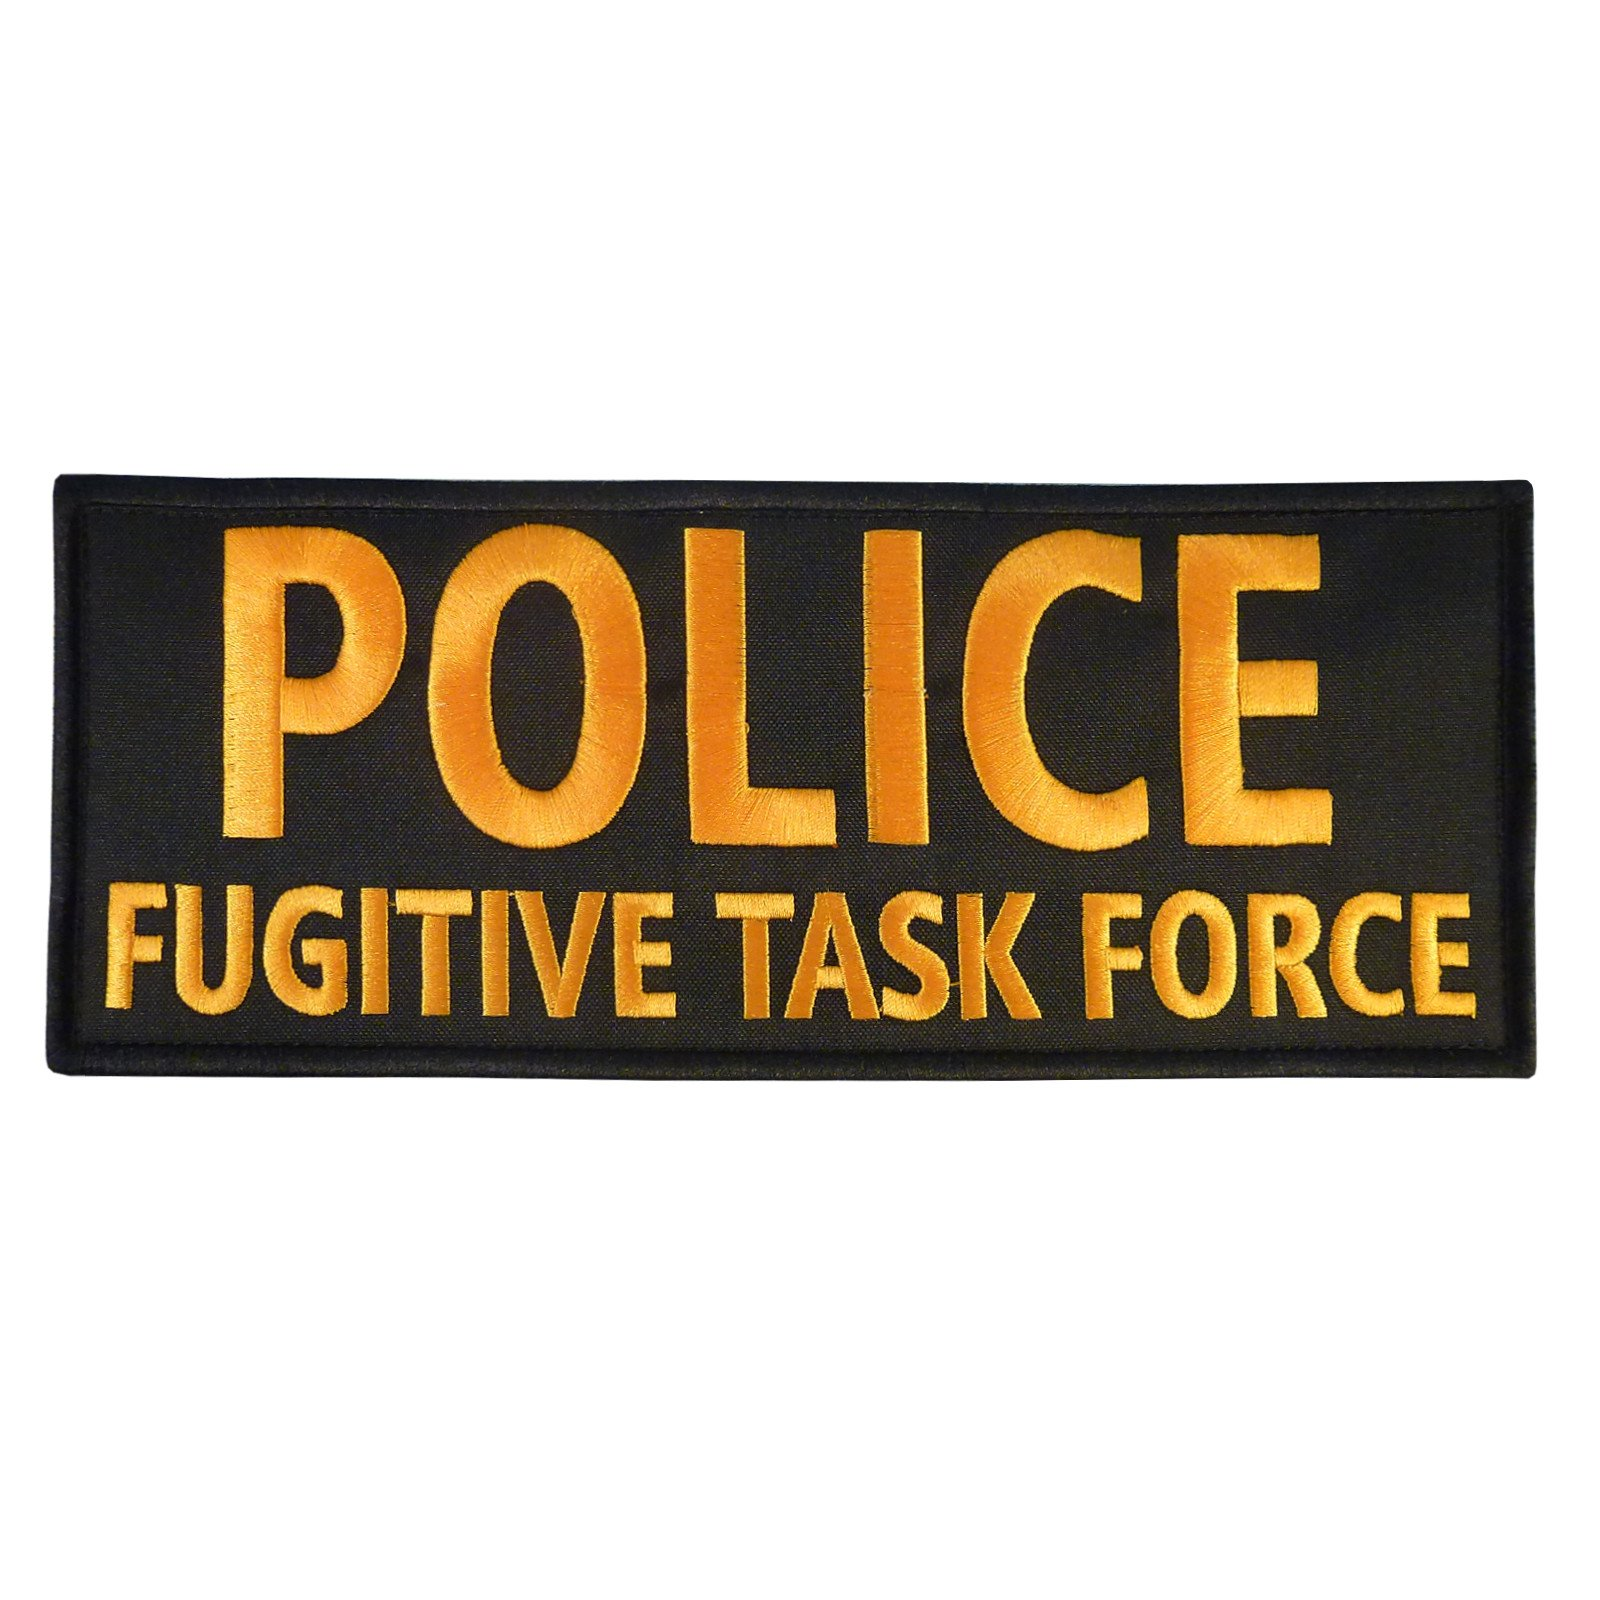 POLICE FUGITIVE TASK FORCE Large XL 10x4 inch SWAT Ricamata Ricamo Fastener Toppa Patch